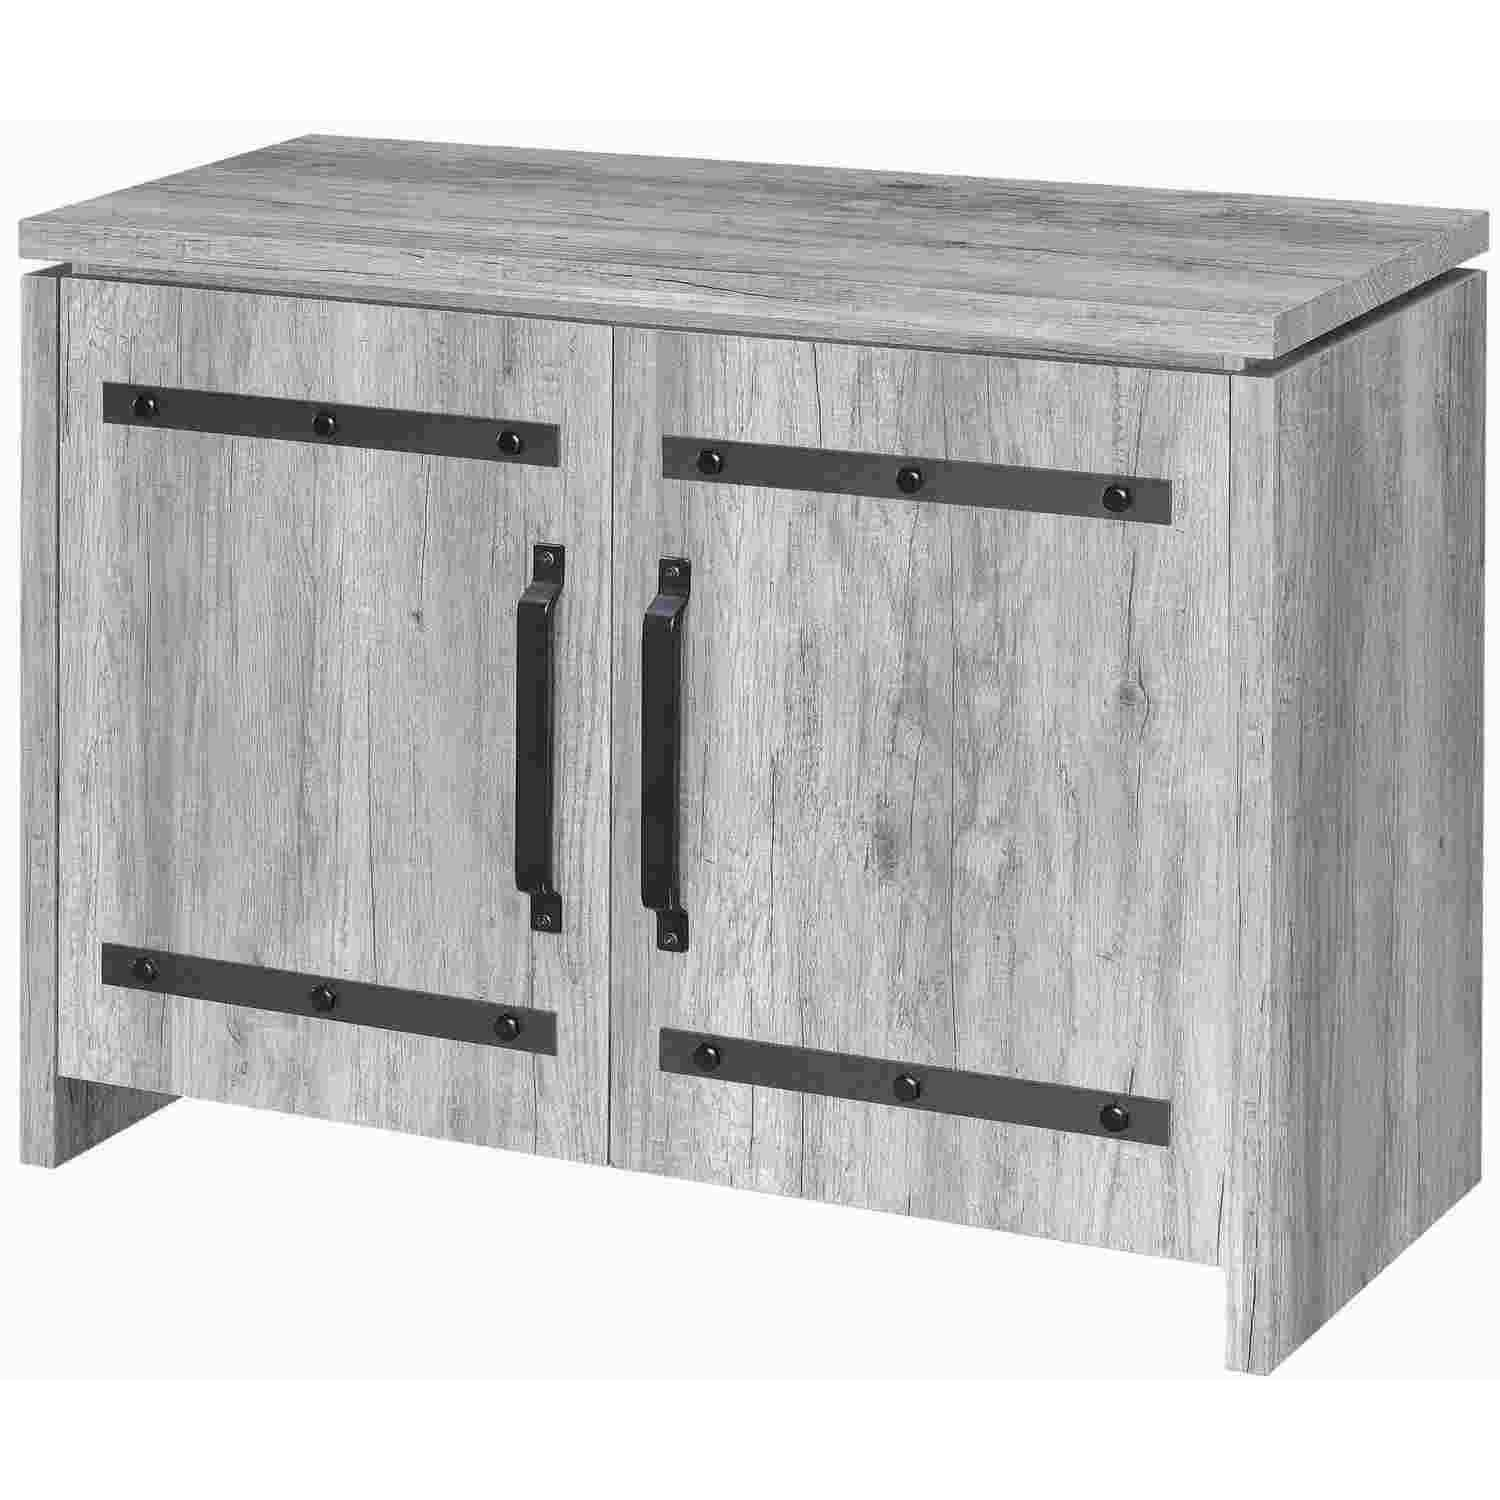 Industrial Style Curio Cabinet in Grey Driftwood Finish - image-3